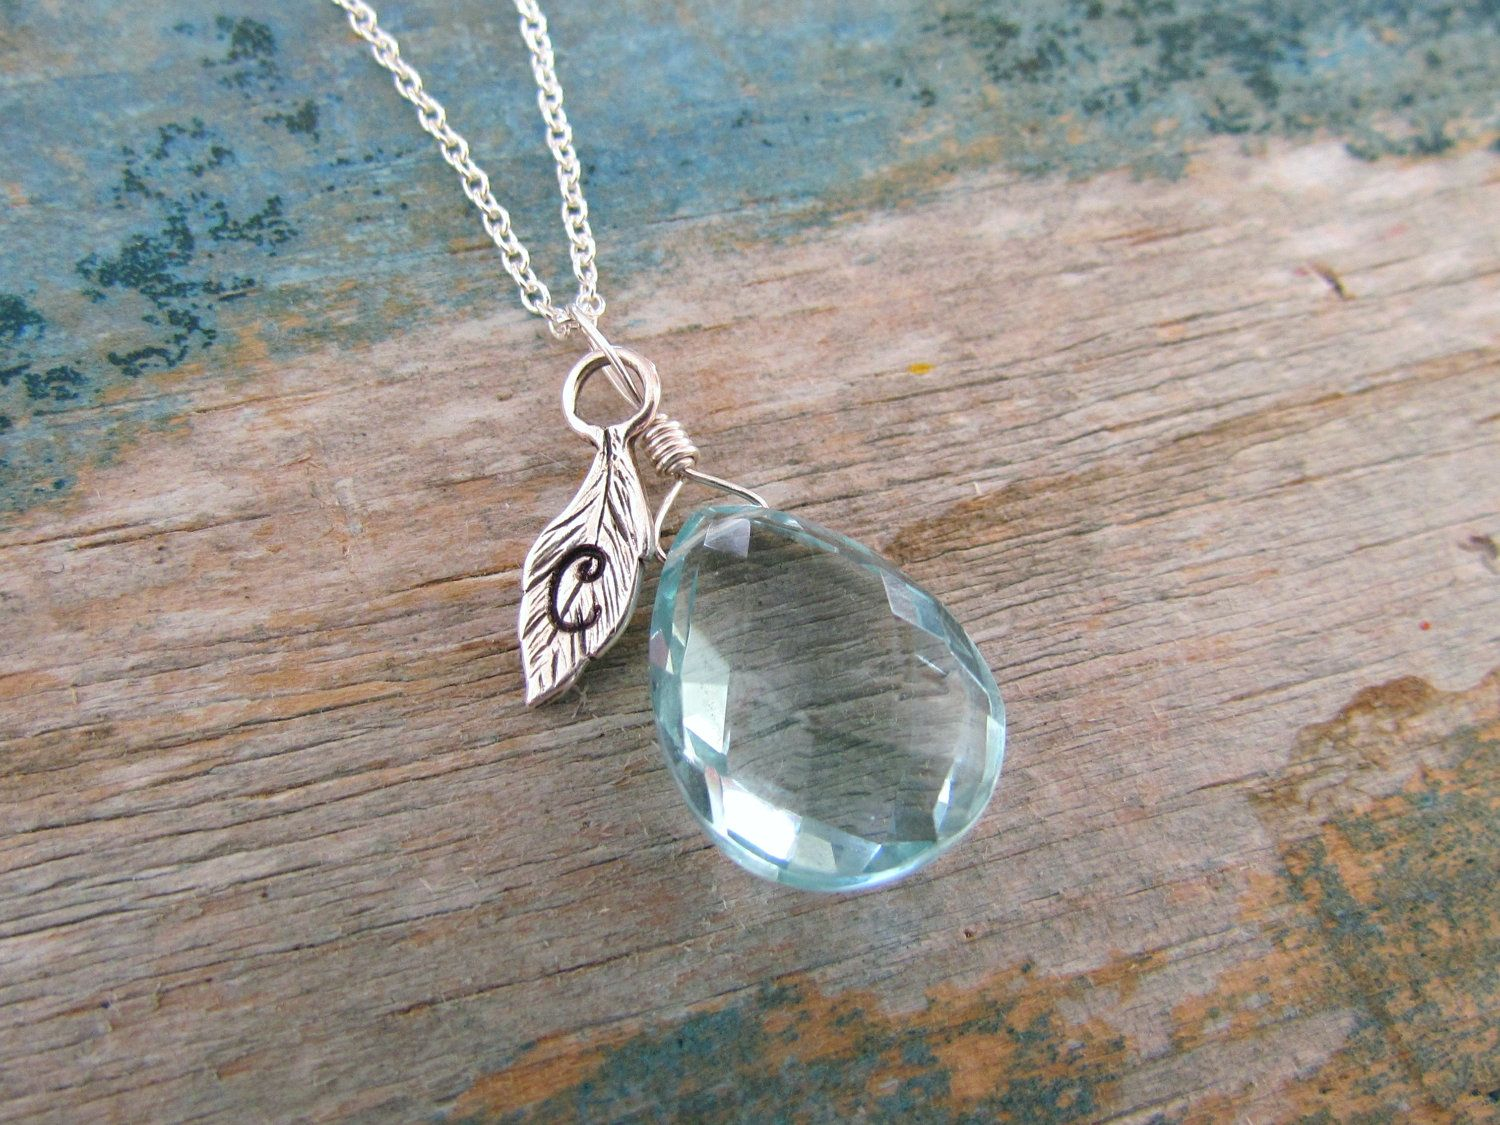 Personalized initial leaf necklace - aqua blue quartz, sterling silver, custom handstamped jewelry. $35.00, via Etsy.